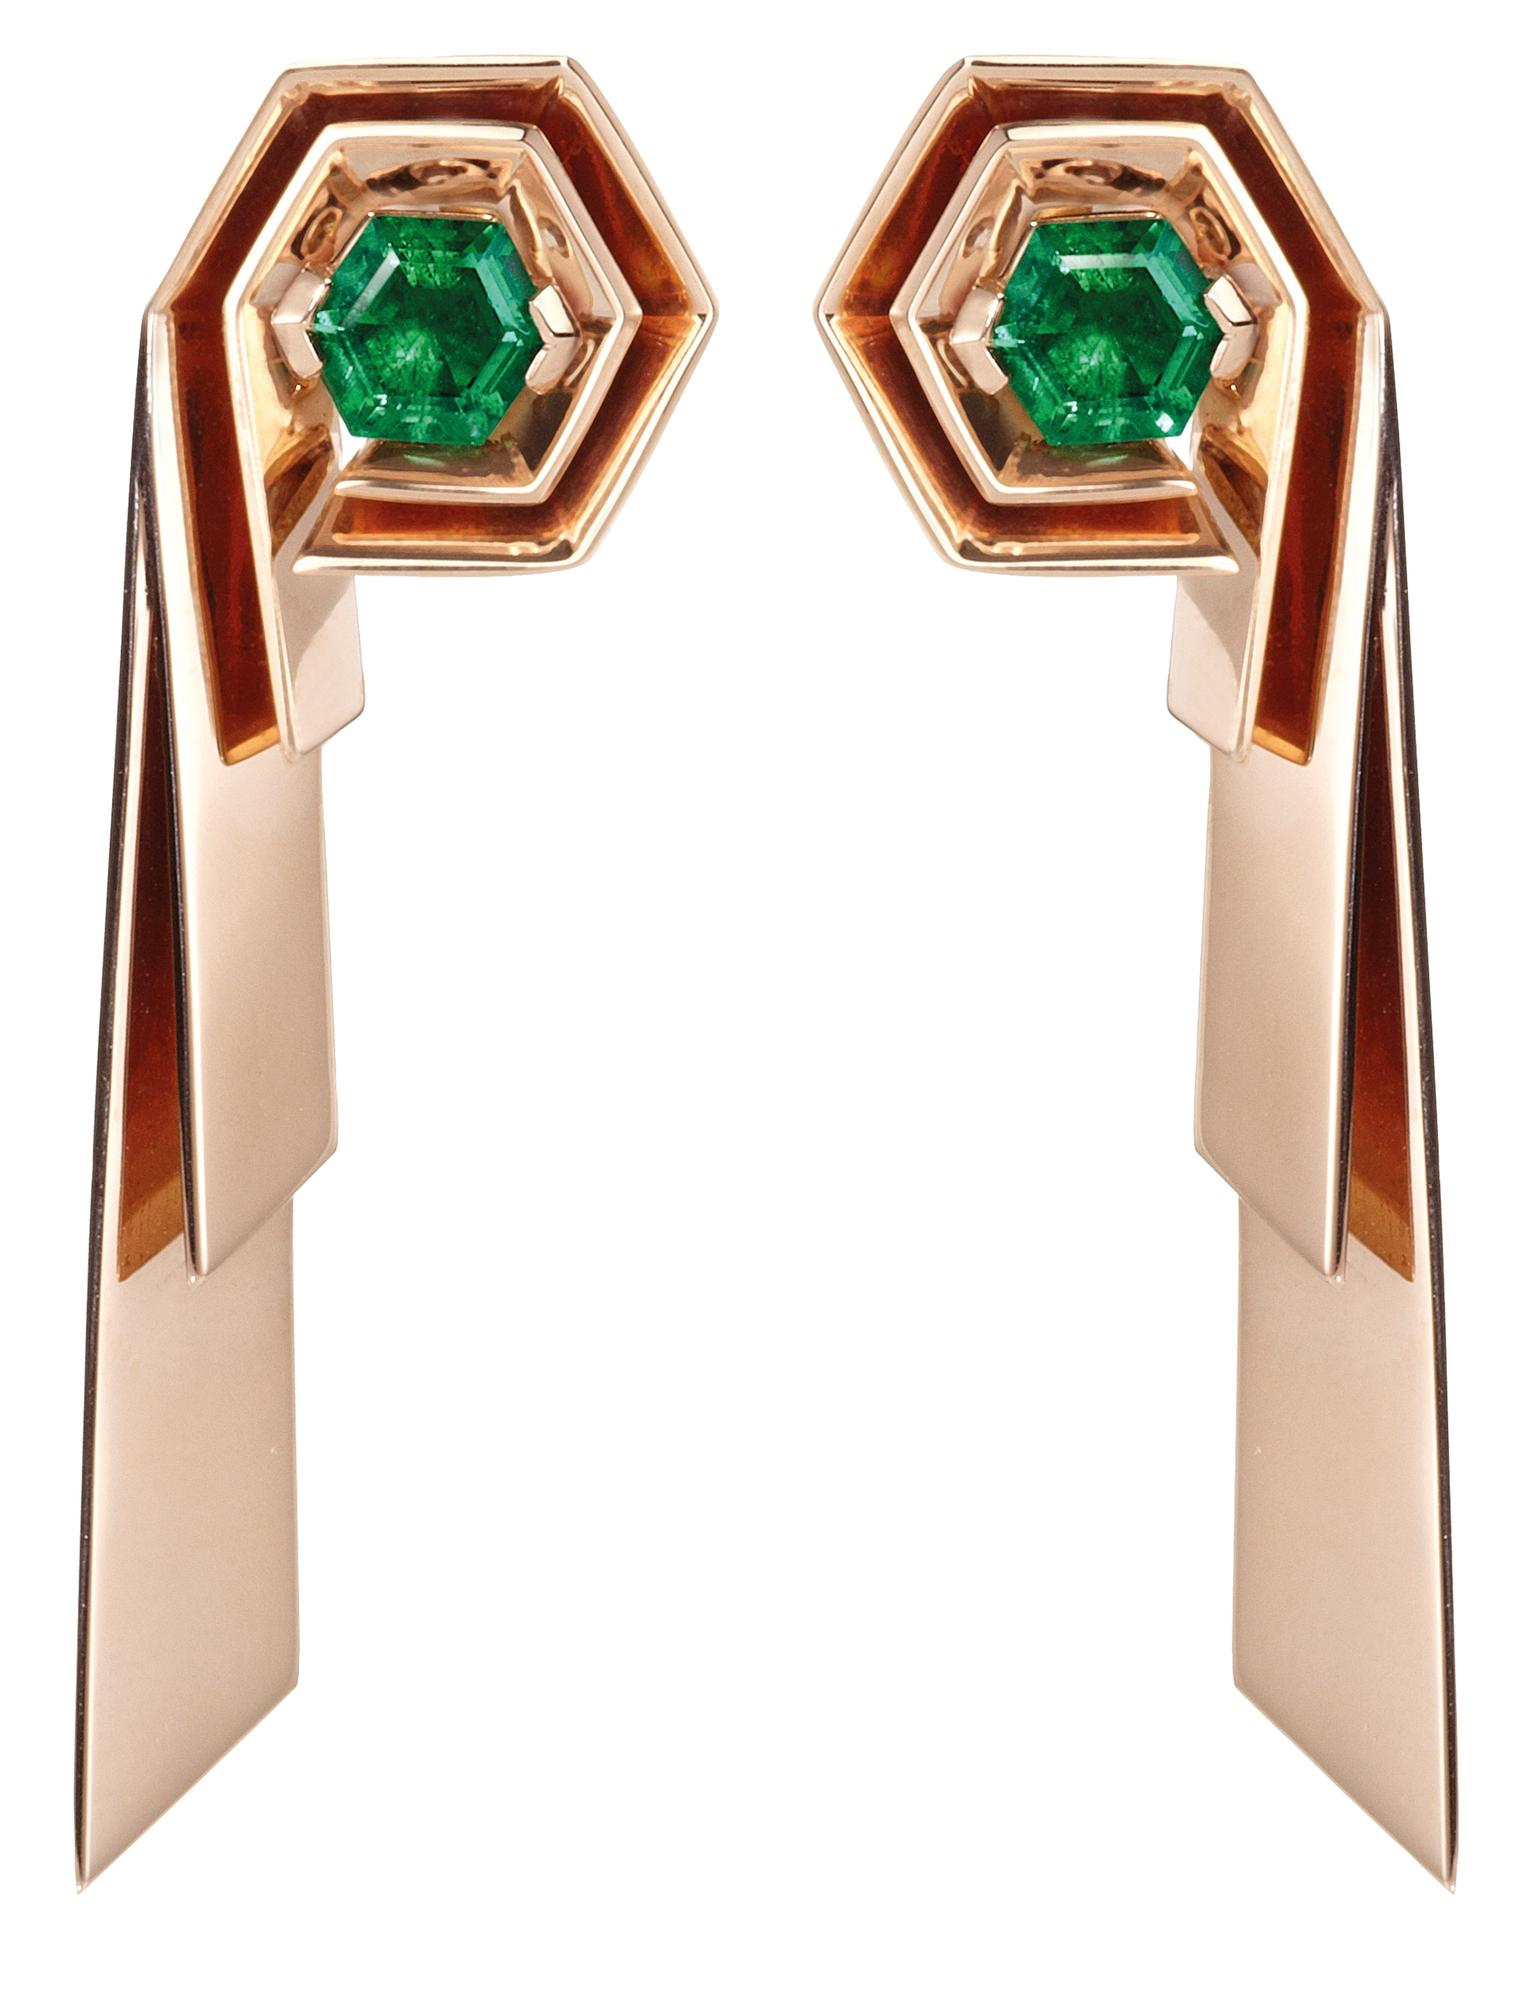 Hannah Martin for Gemfields emerald earrings_20130808_Zoom